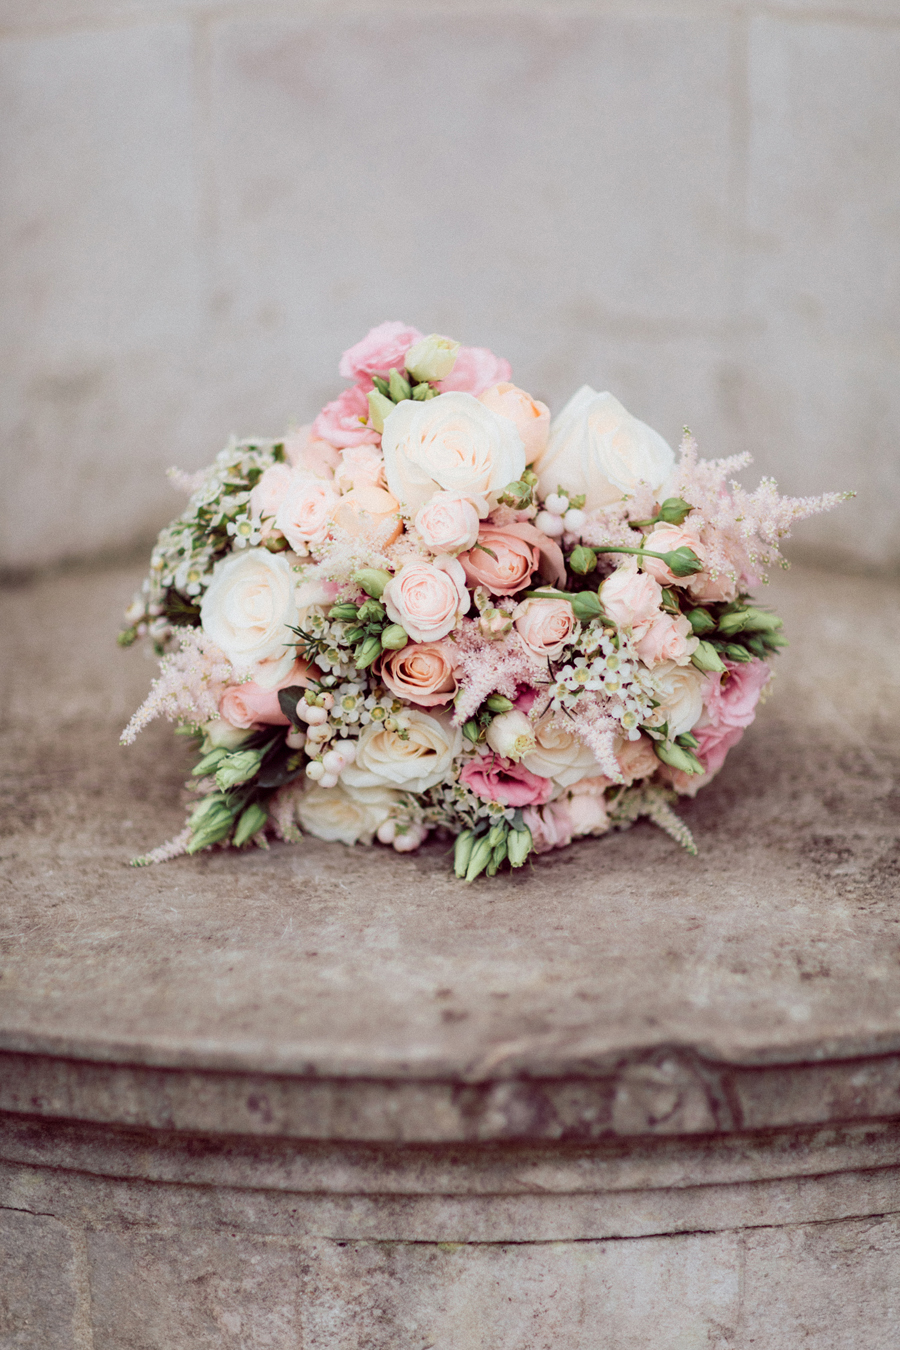 My Fair Lady Inspired Styled Shoot by Charlotte Munro and Sanshi